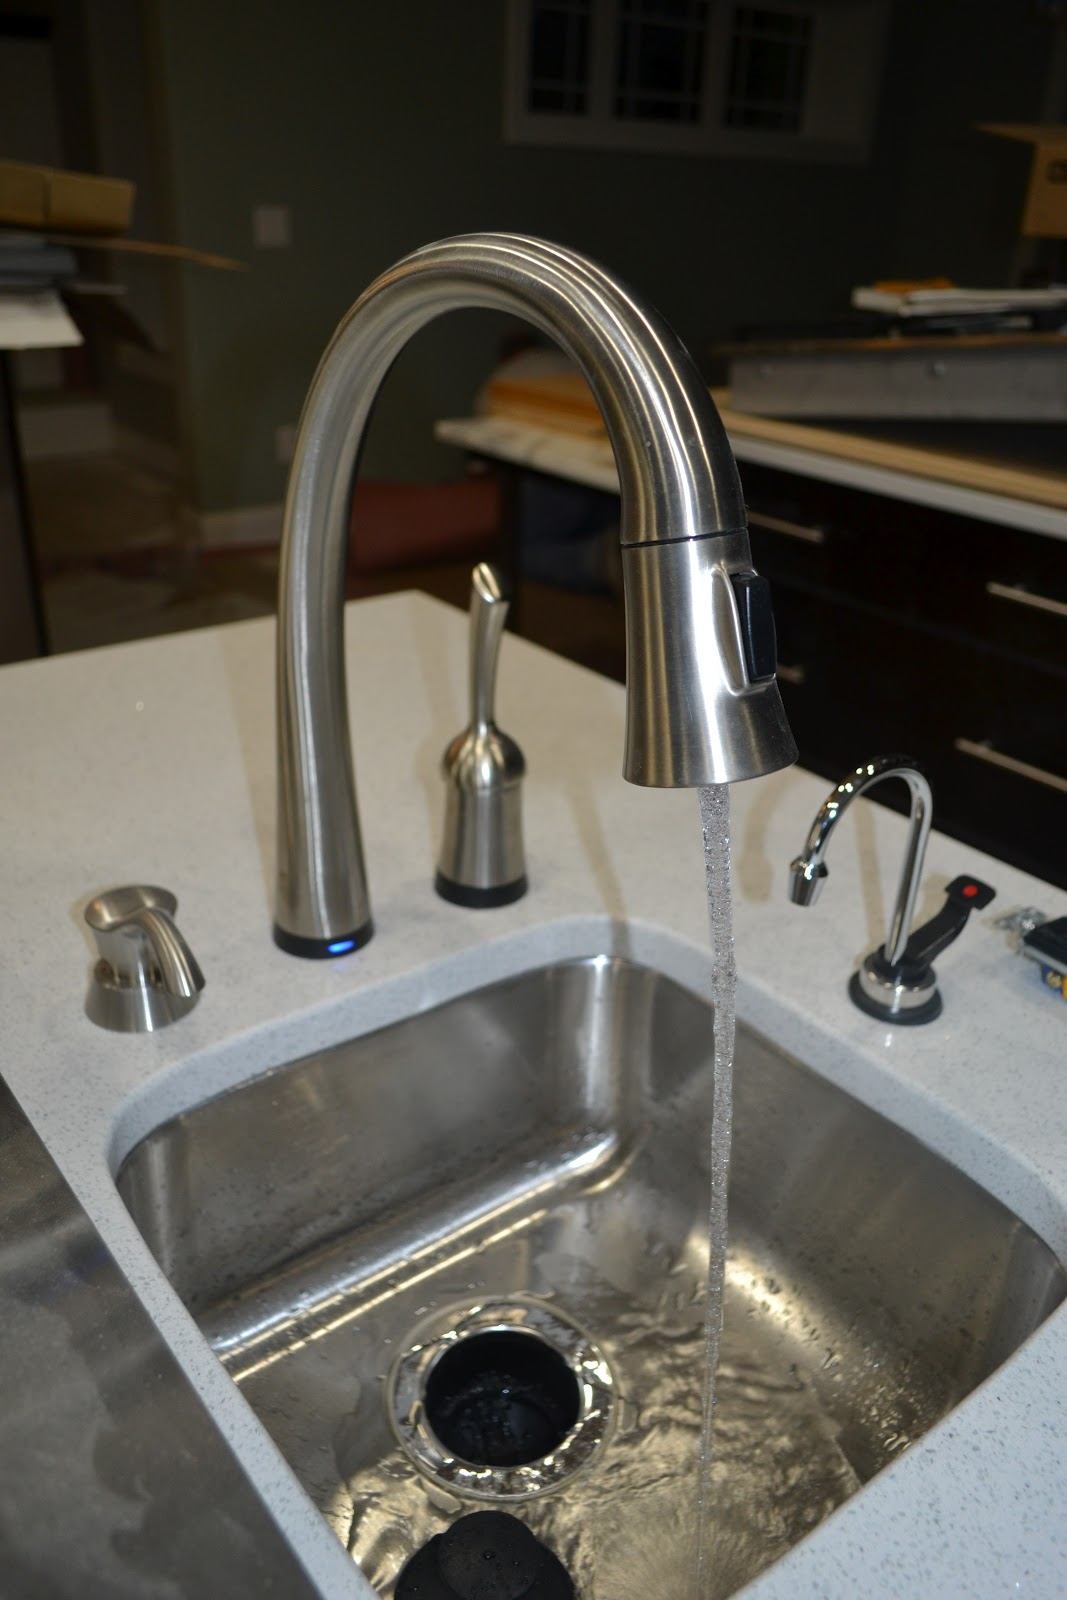 How Does A Kitchen Sink Soap Dispenser Work